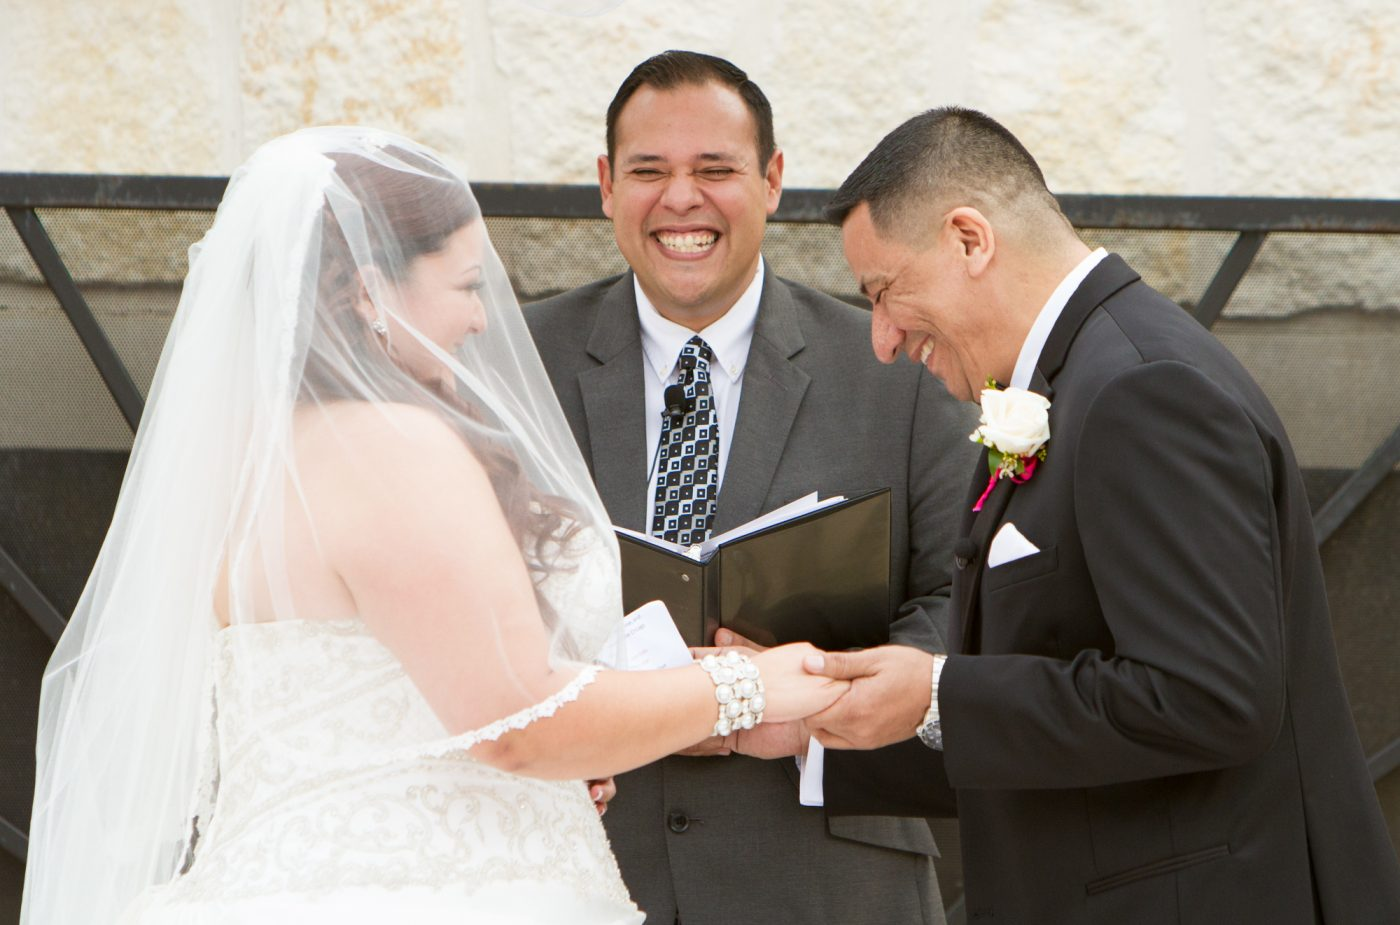 How To Become A Wedding Officiant.Texas Wedding Ministers Job Opportunities Texas Wedding